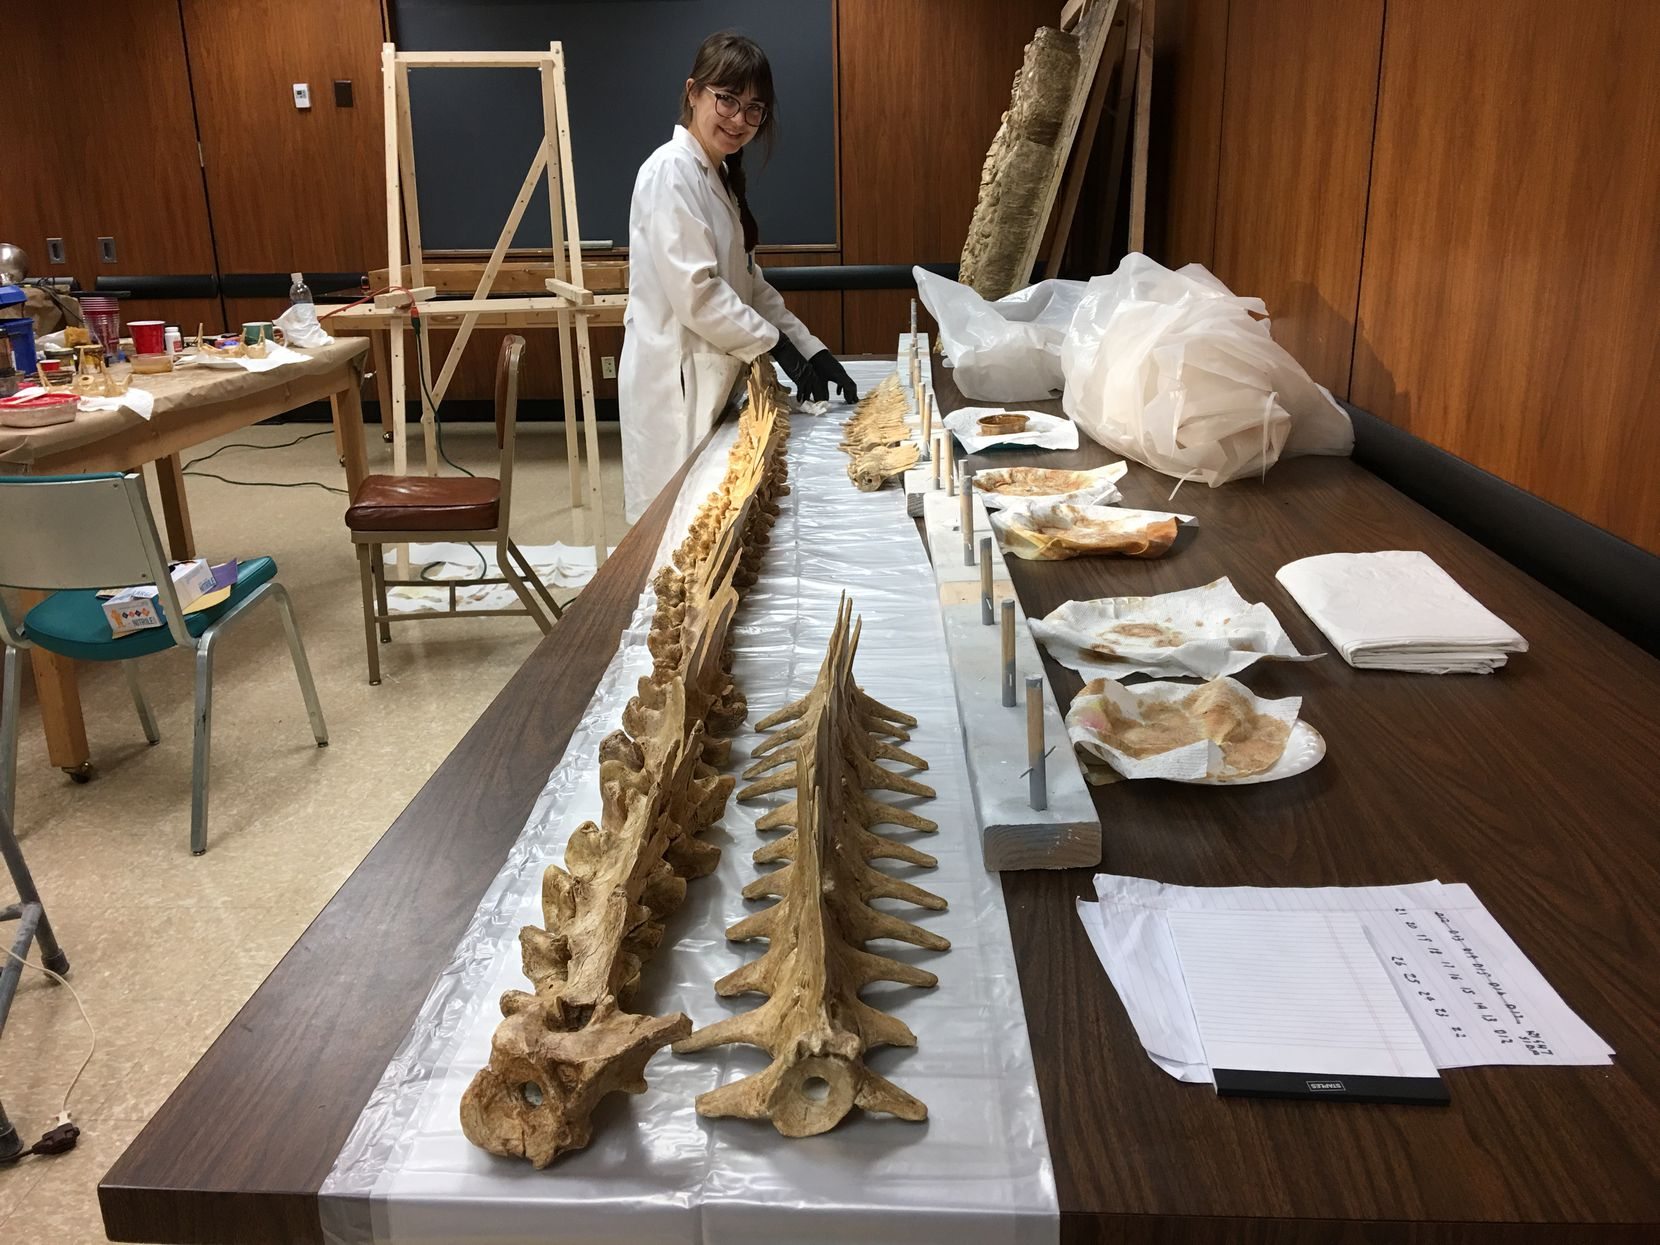 Myria Perez prepared a fossil for Sea Monsters Unearthed, a Smithsonian National Museum of Natural History exhibit at SMU in December 2018.